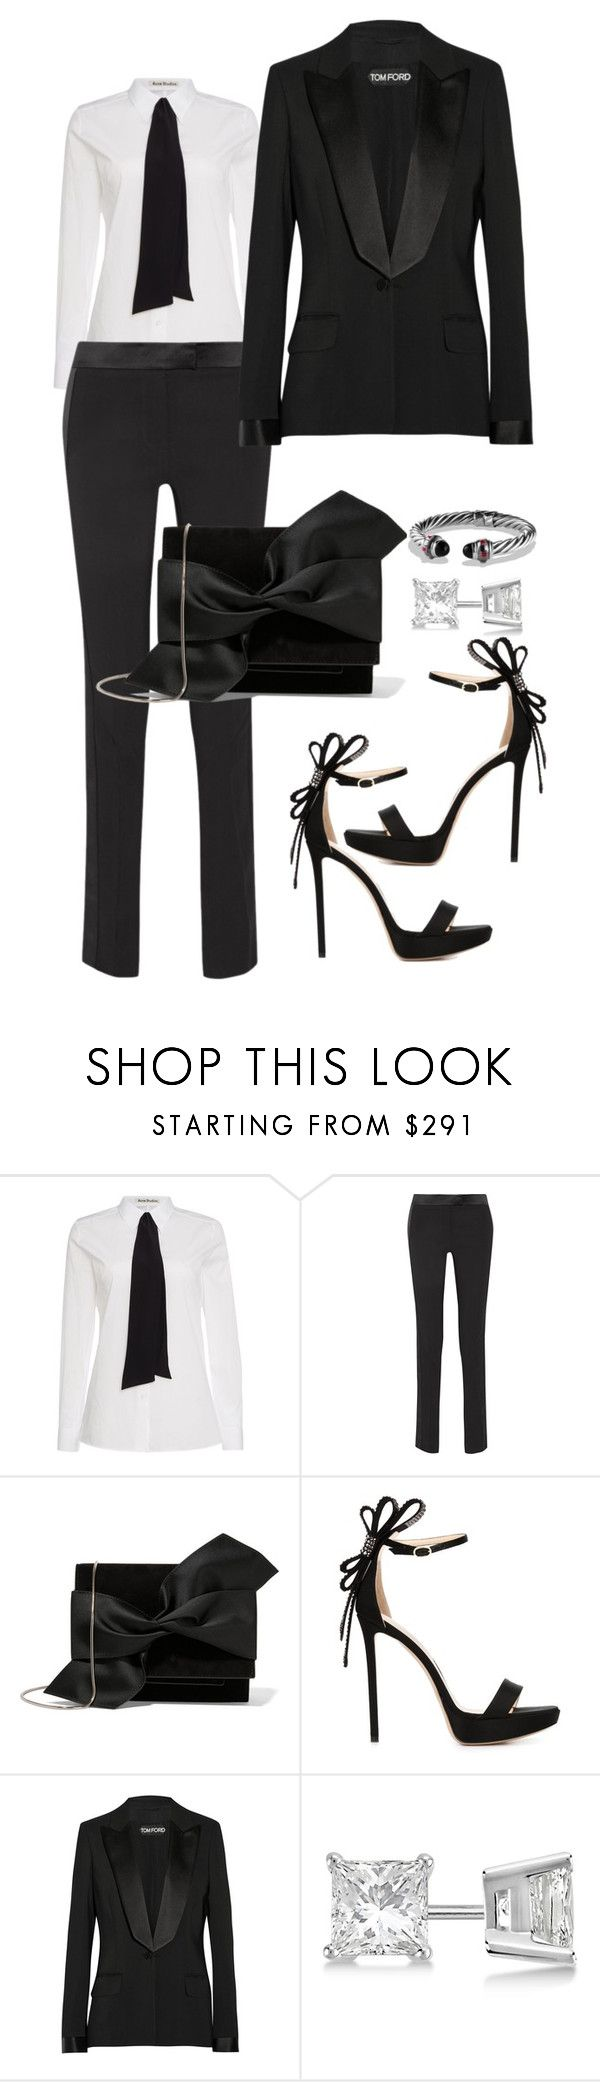 """Untitled #284"" by scannedbyaaron ❤ liked on Polyvore featuring Acne Studios, Tom Ford, Victoria Beckham, Nicholas Kirkwood, Allurez and David Yurman"